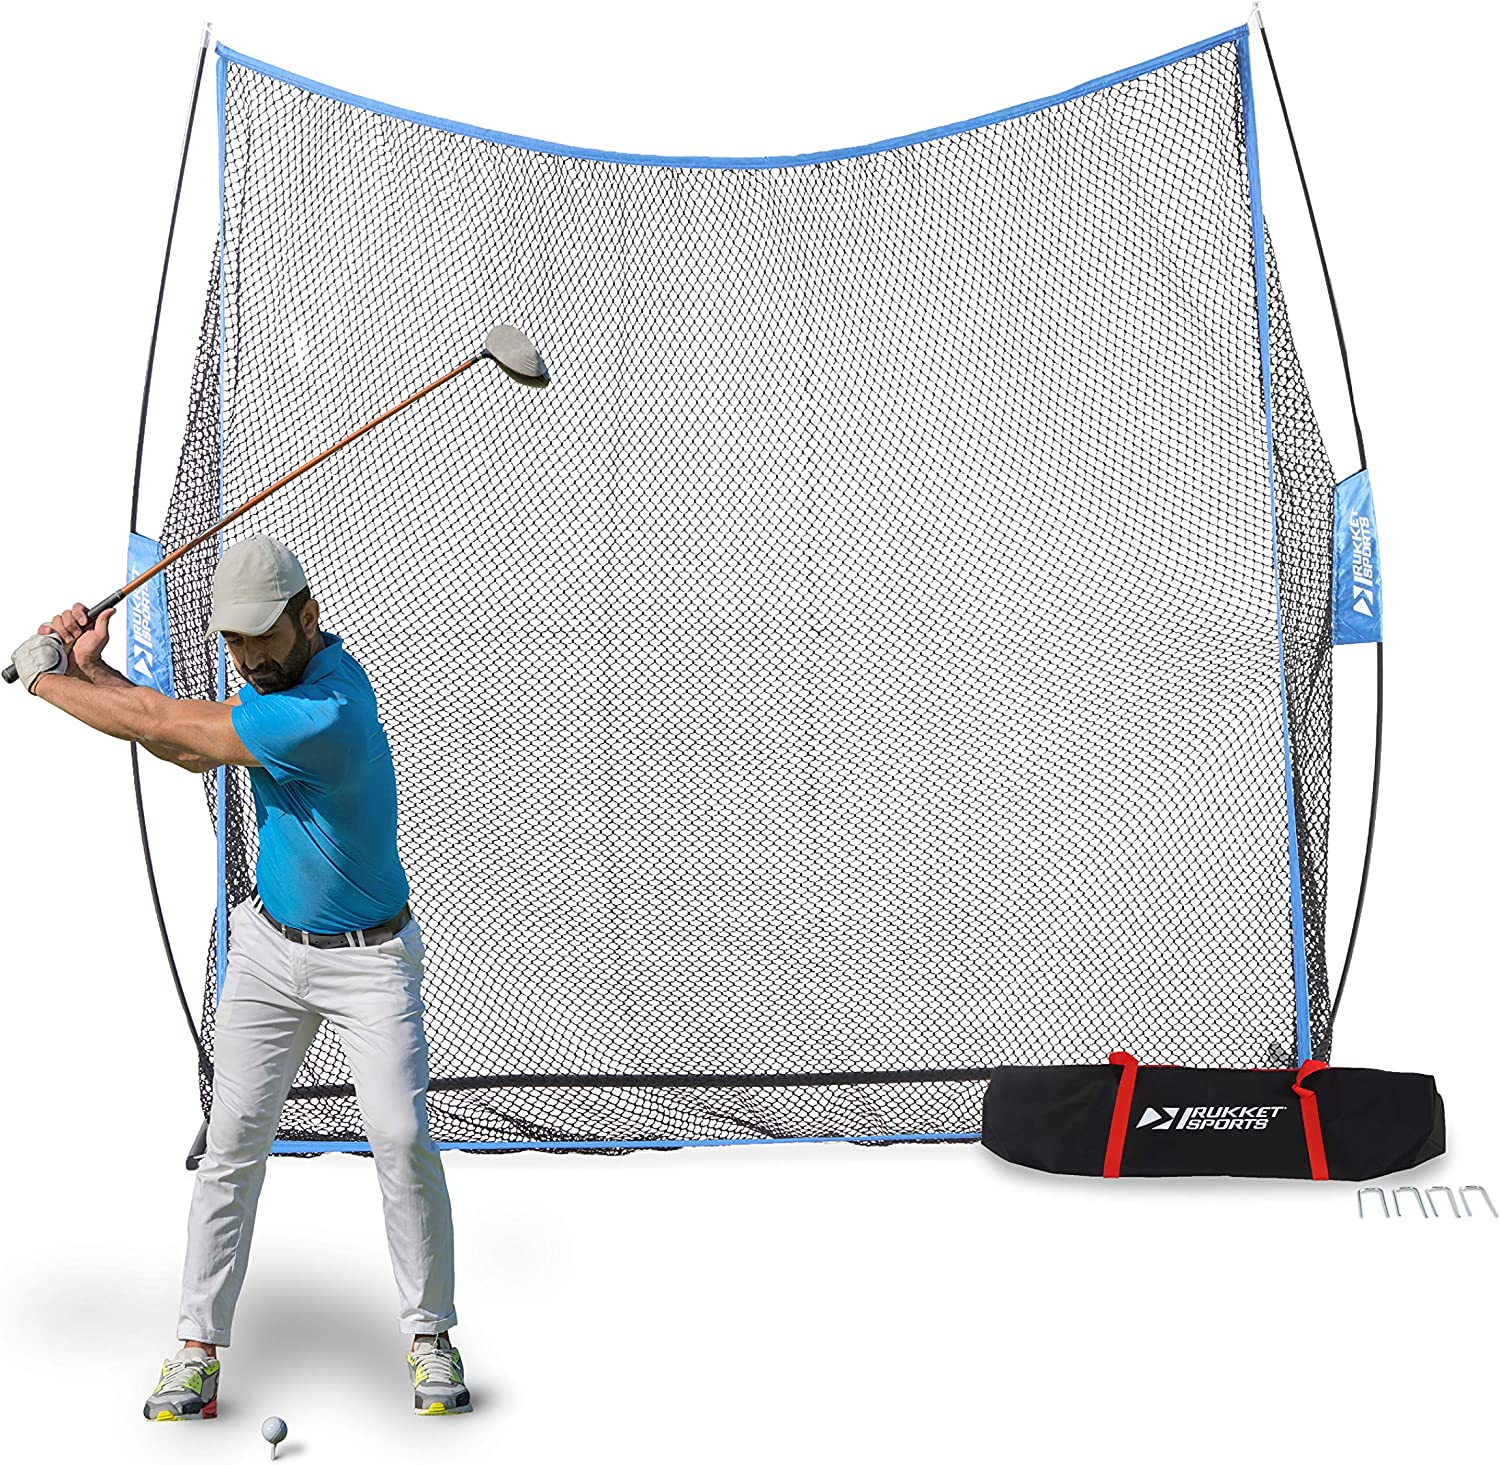 Rukket 7x7ft Golf Hitting Net & Carry Bag, Practice Driving Range for Golfing at Home, Swing Training Aid, Works with All Clubs and Real Golf Balls : Sports & Outdoors